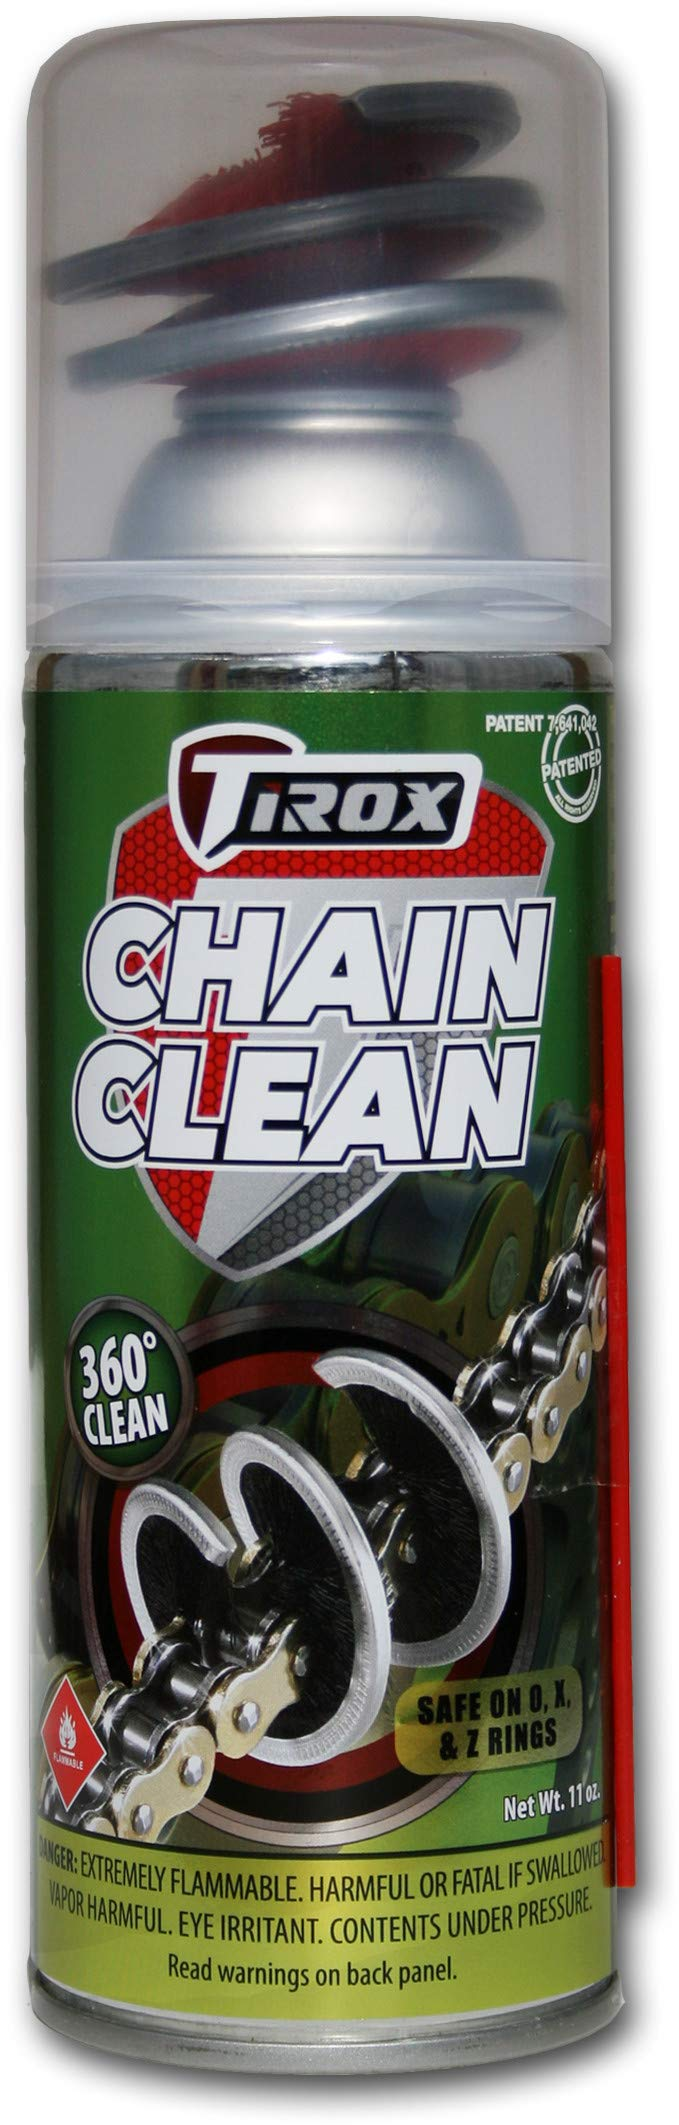 Tirox Chain Cleaner with 360°, Brush 803500 by TIROX